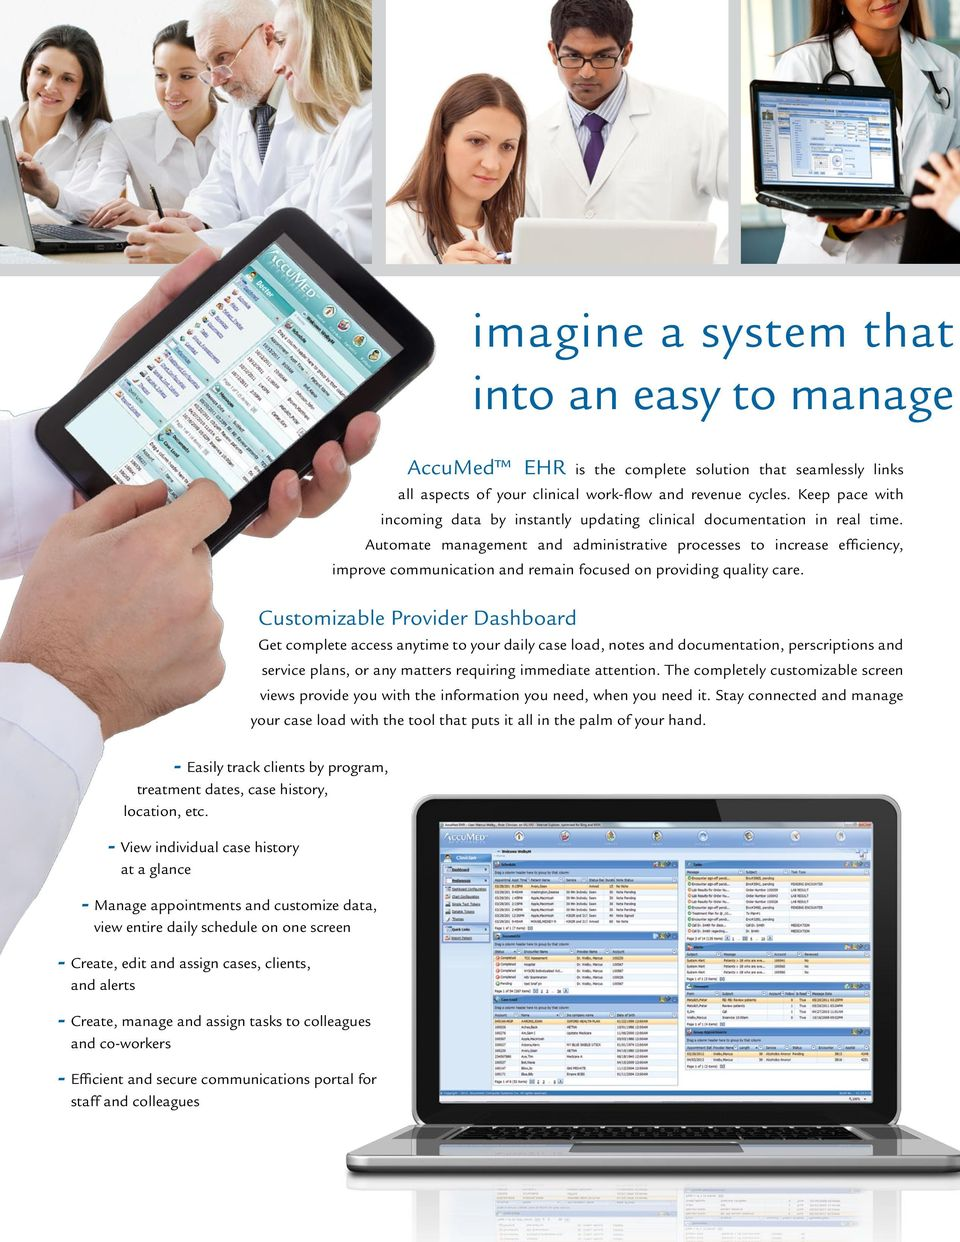 Automate management and administrative processes to increase efficiency, improve communication and remain focused on providing quality care.